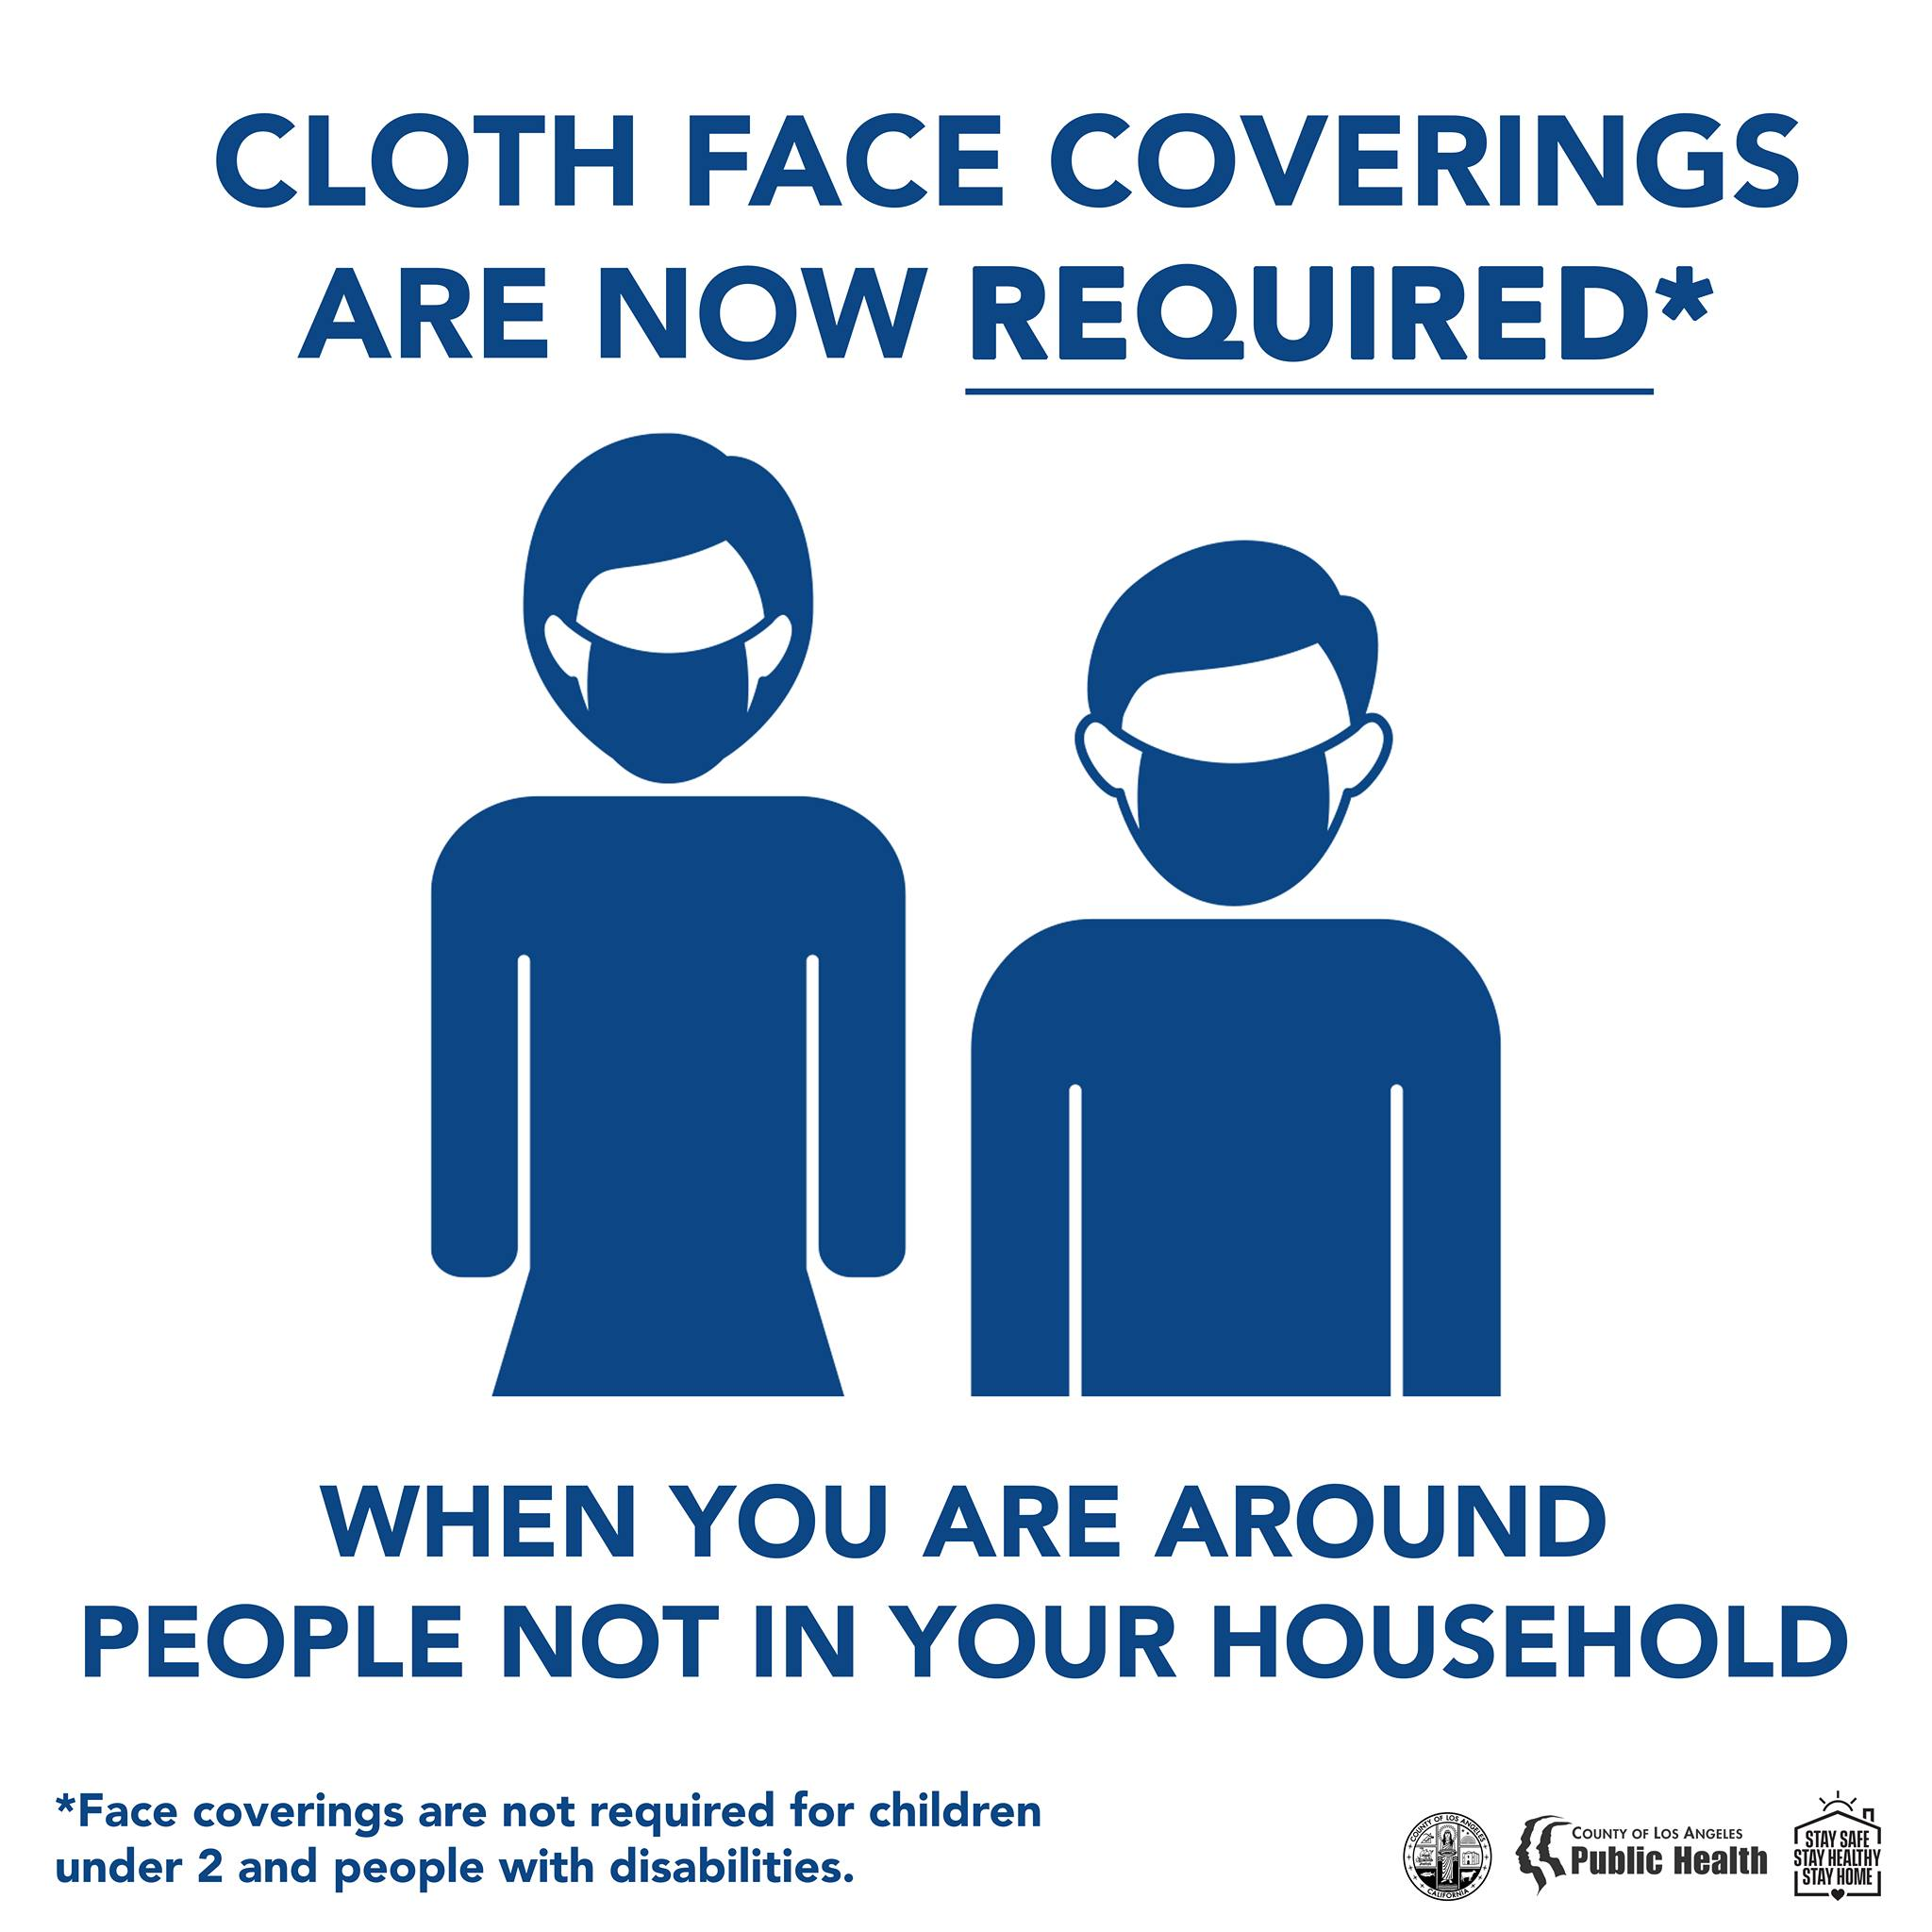 Cloth Face Coverings Now Required